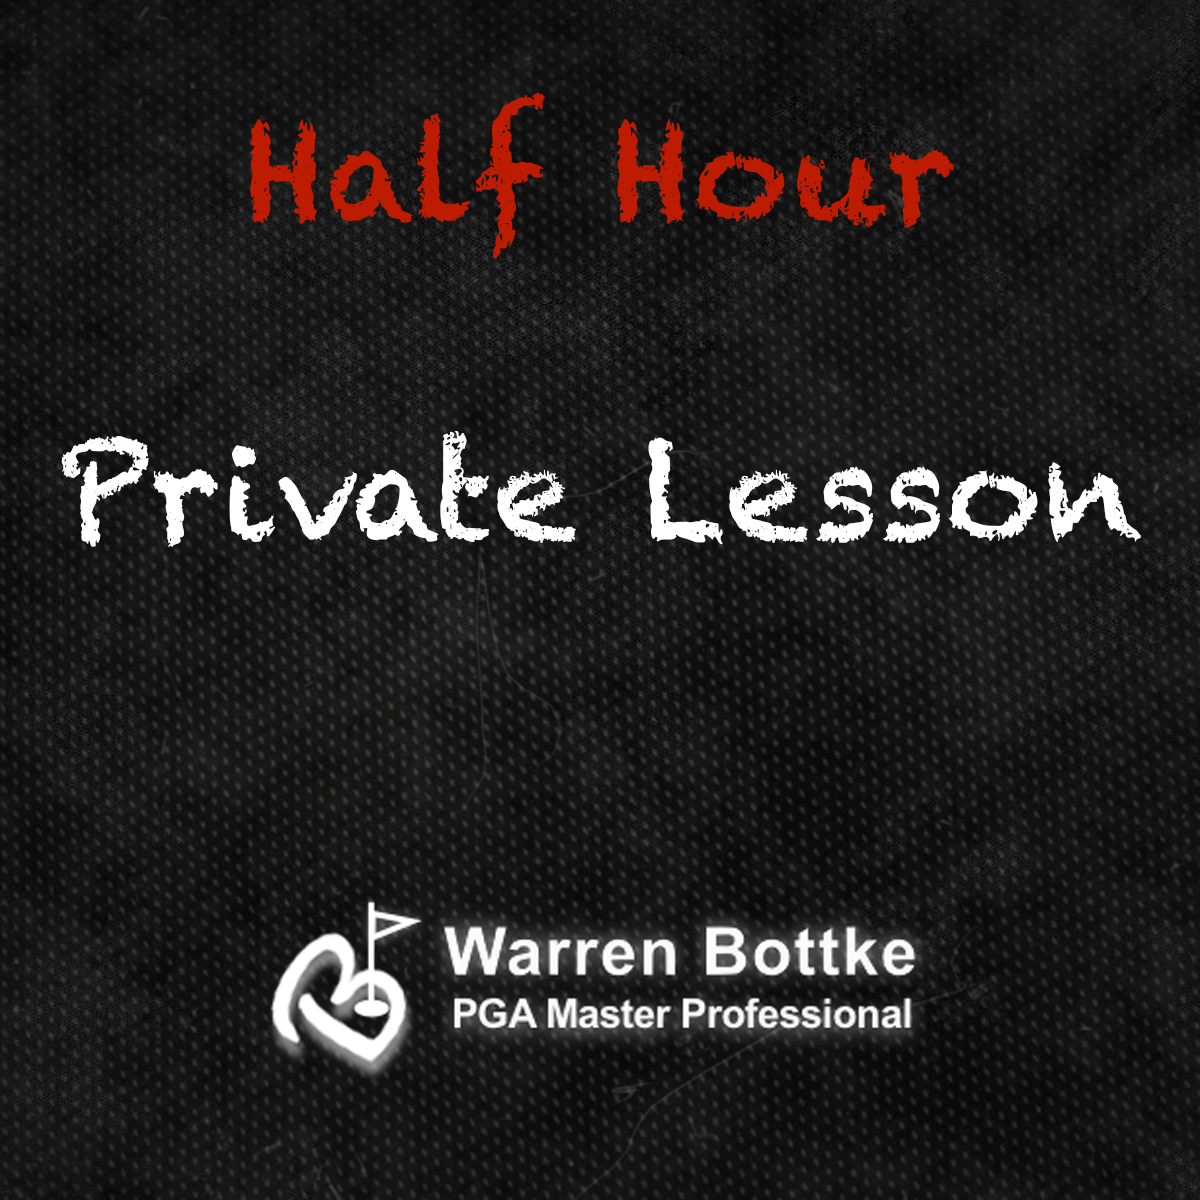 Half Hour Private Golf Lesson